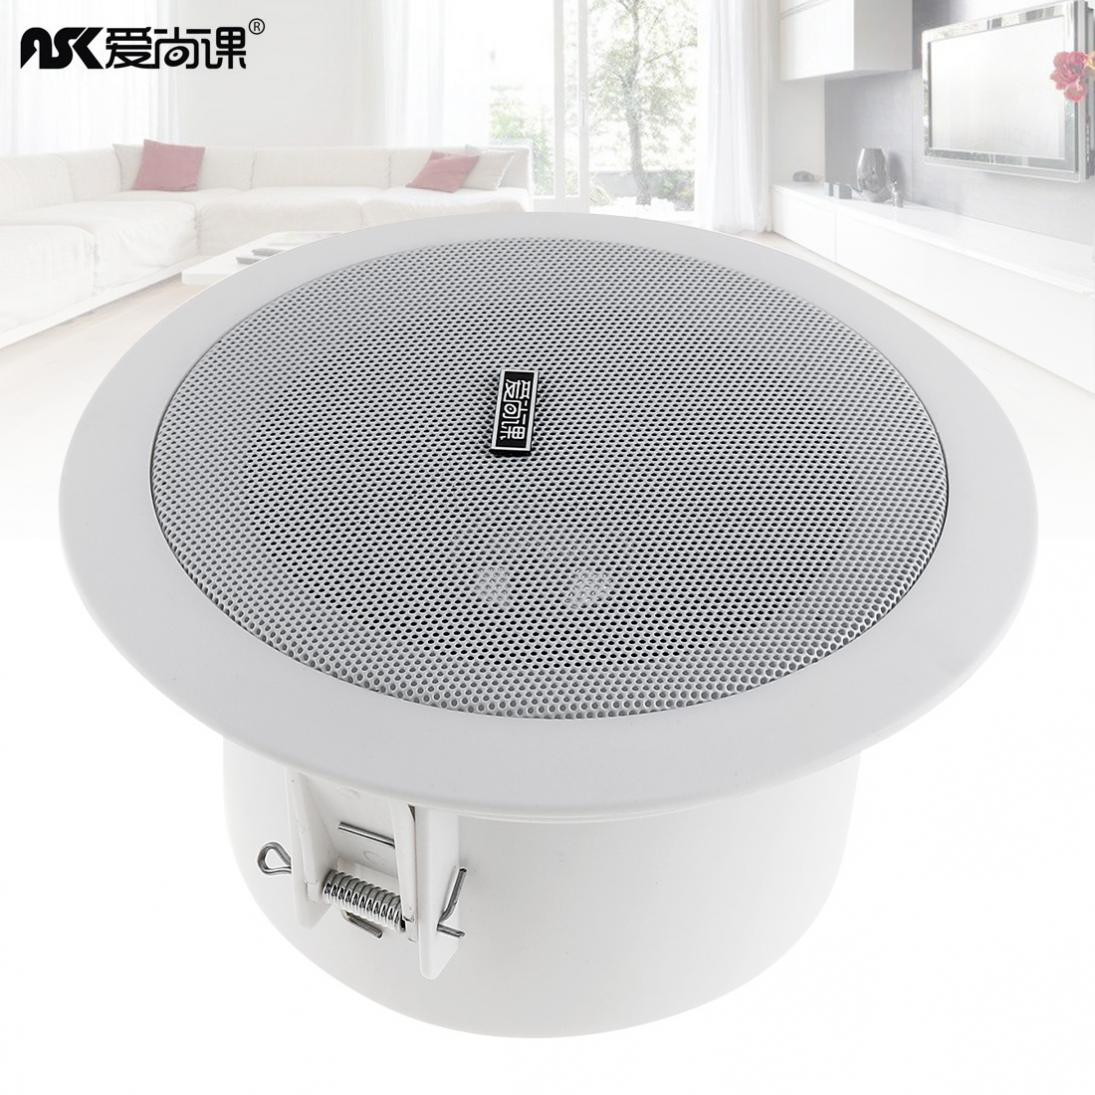 4.5 Inch Waterproof Household Radio Ceiling Portable Speaker Public Broadcast Background Music Speaker for Home / Supermarket